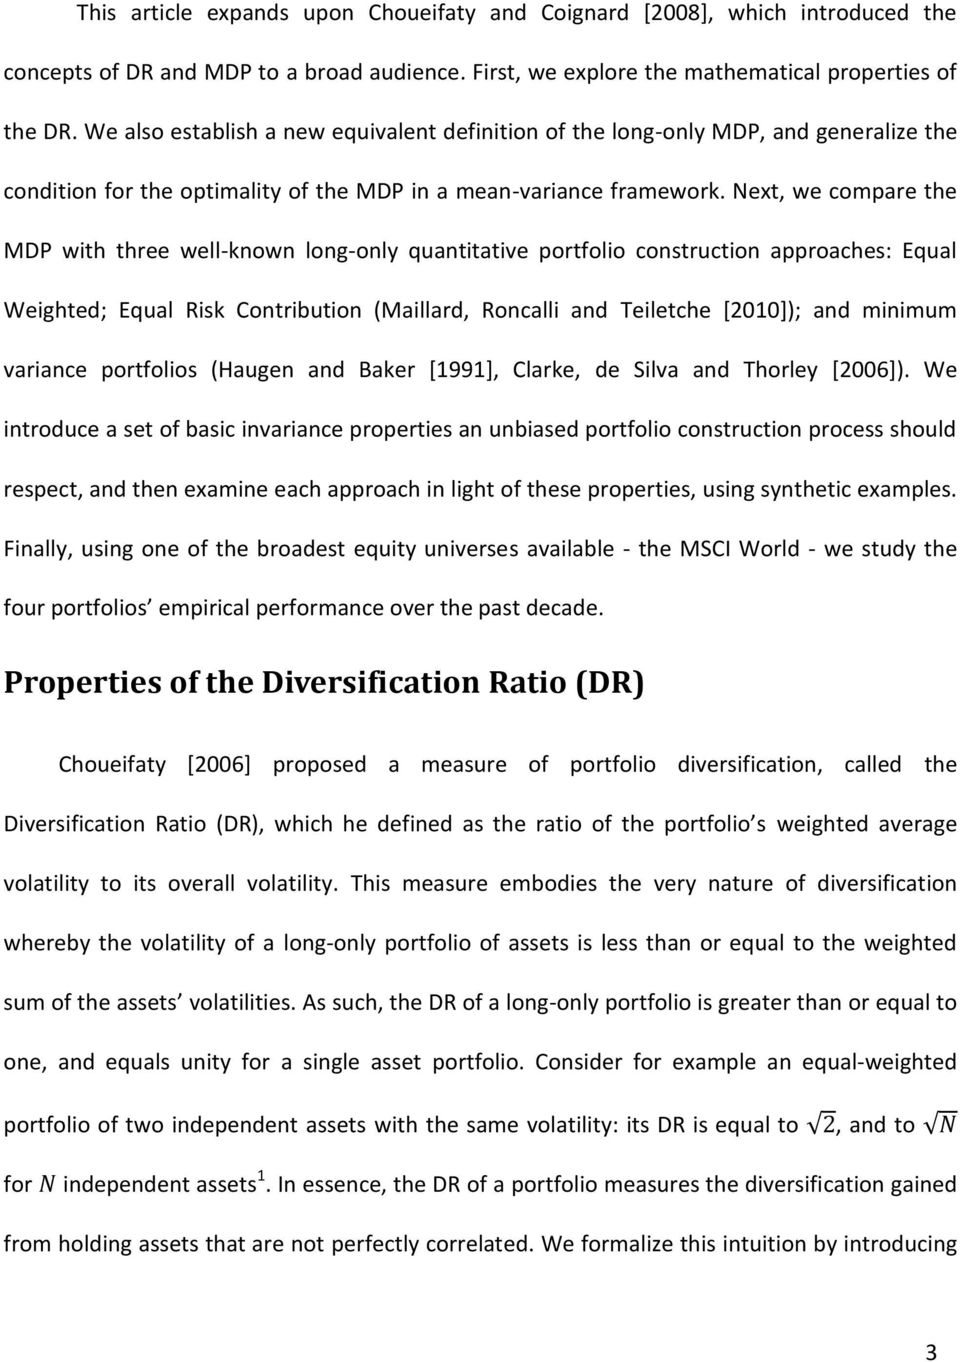 Next, we compare the MDP with three well-known long-only quantitative portfolio construction approaches: Equal Weighted; Equal Risk Contribution (Maillard, Roncalli and Teiletche [2010]); and minimum